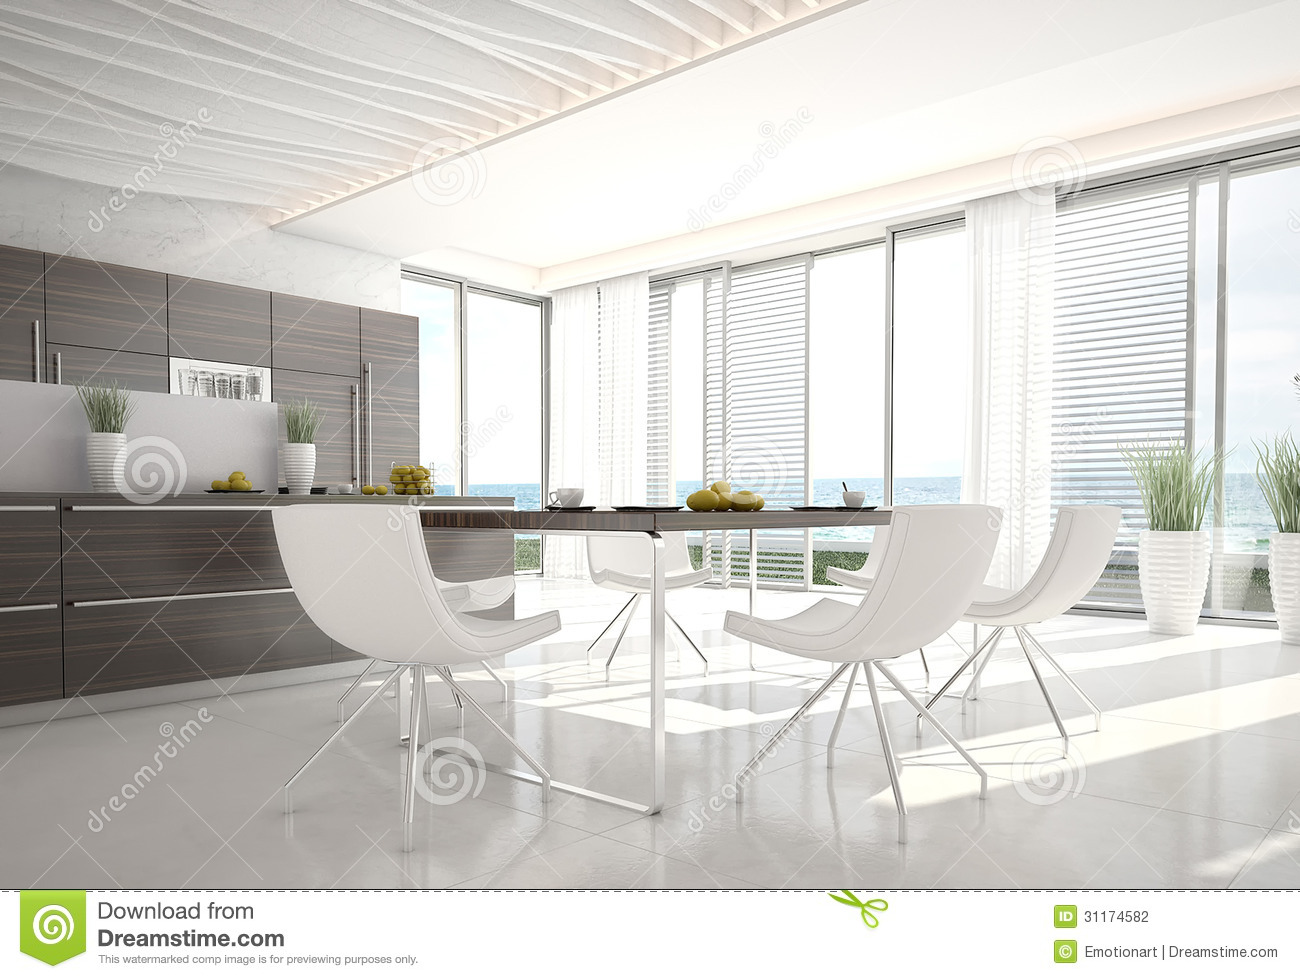 Ultra Modern Design Kitchen Interior Architecture Stock Illustration Illustration 31174582